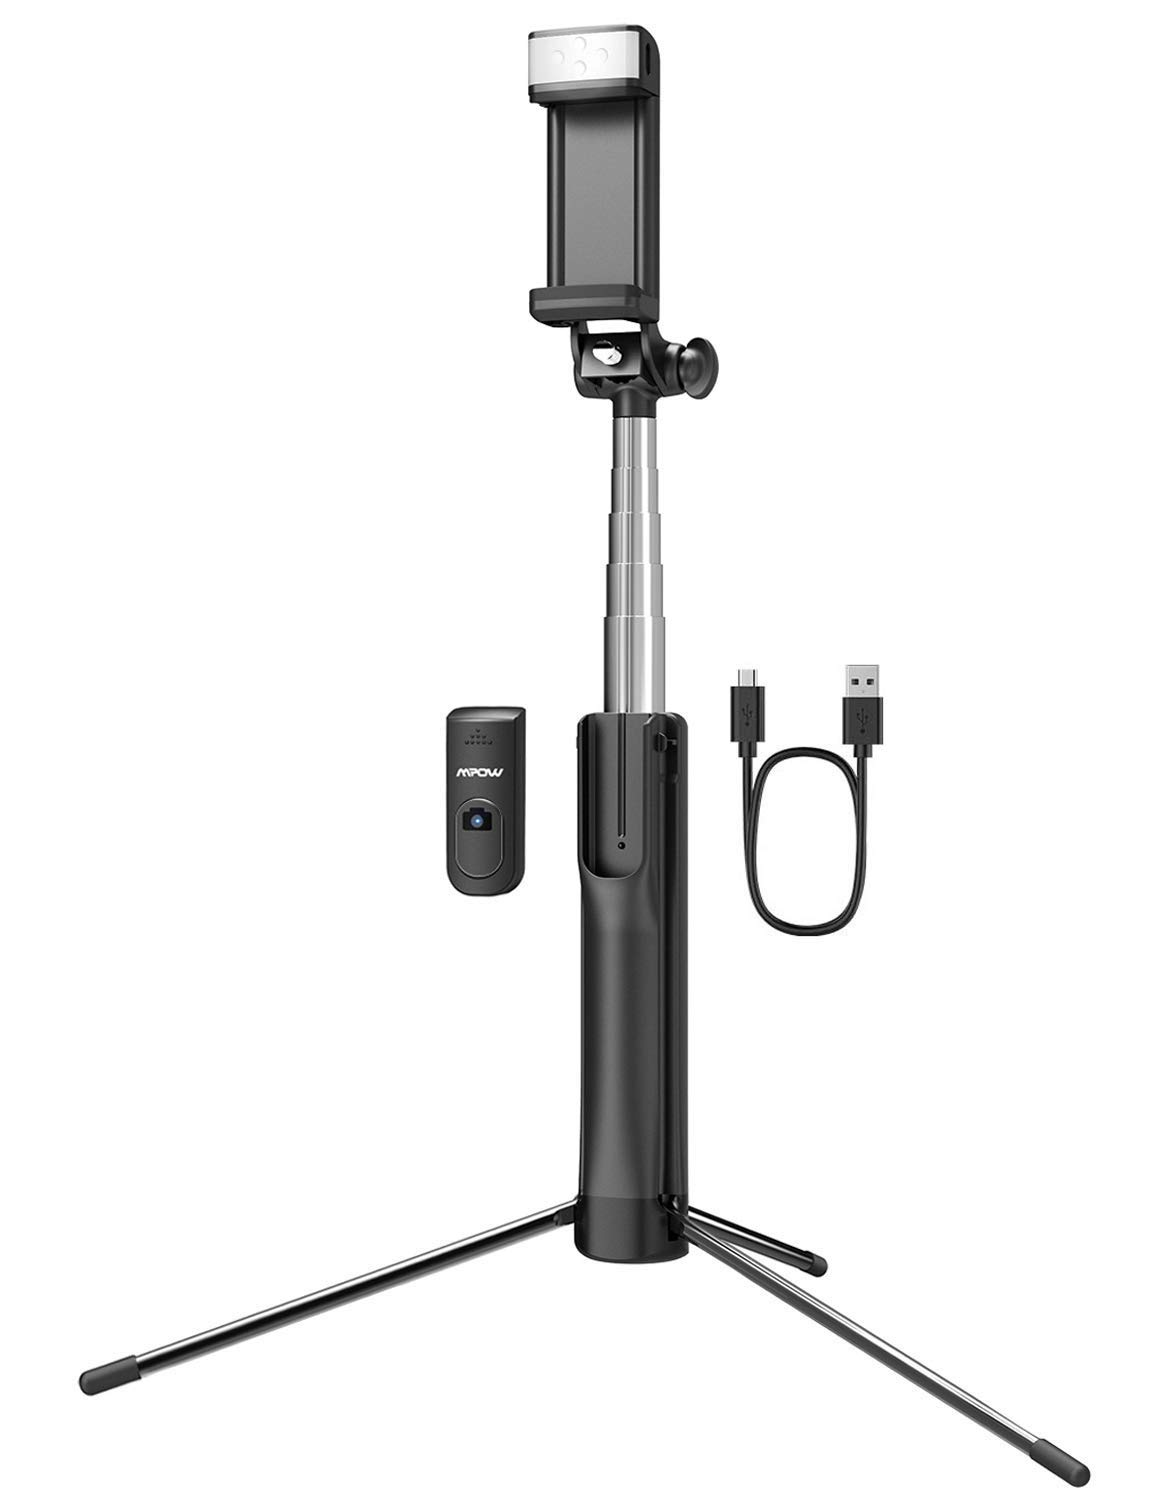 Tripode Extensible Selfie Stick Bluetooth Para Gopro/iPhone Xs Max,xs,xr,x,8,8 Plus,7,7 Plus,6s/galaxy S10,s9,8 (xsr)